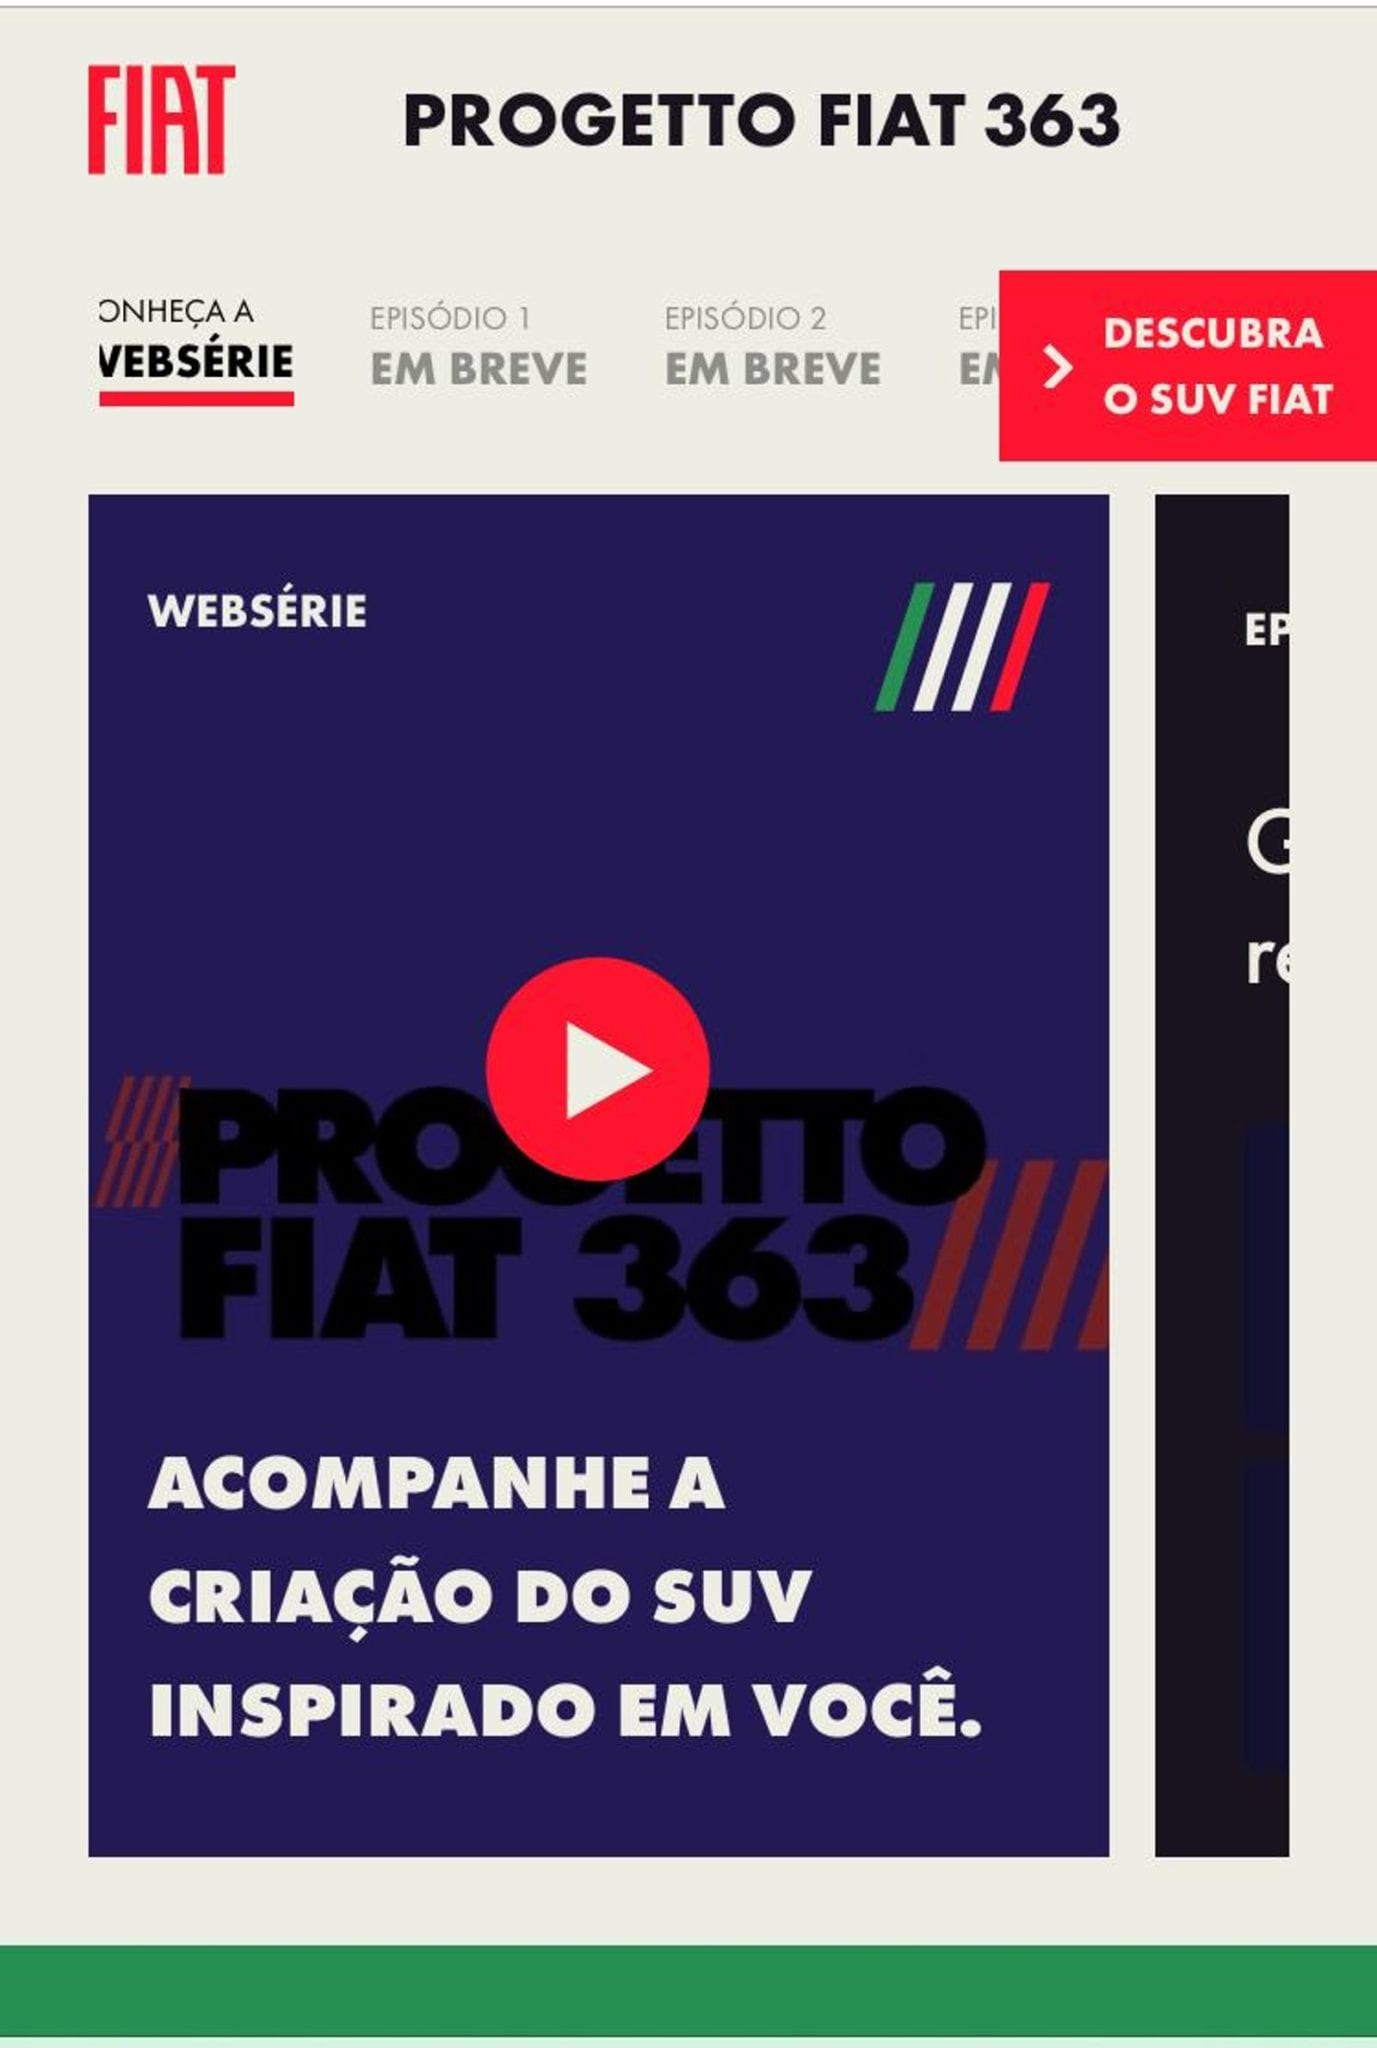 Fiat divulga Websérie sobre novo SUV em plataforma digital exclusiva WhatsAppImage20210312at161113 large scaled